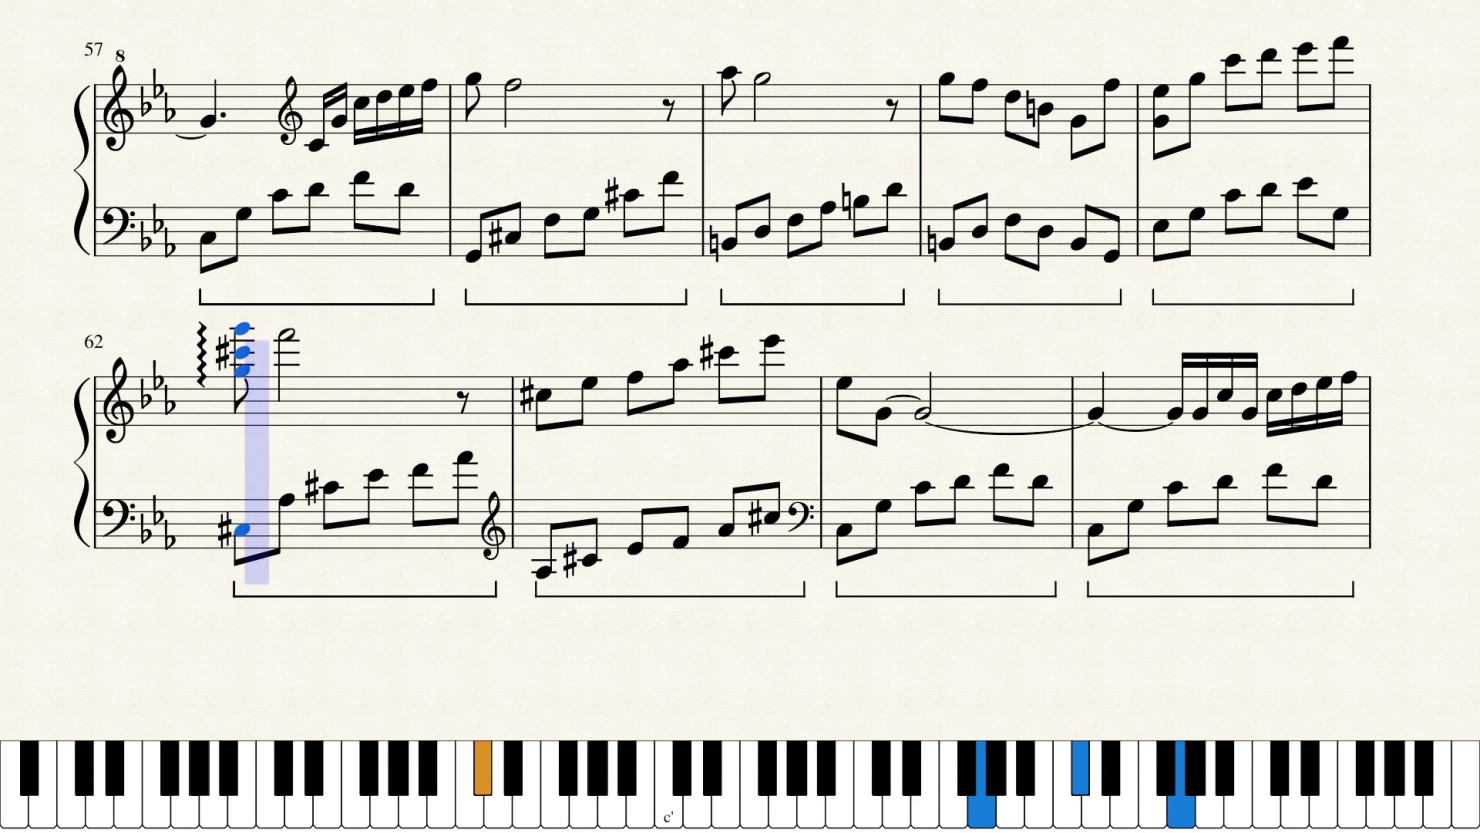 Scrolling sheet music video from MuseScore